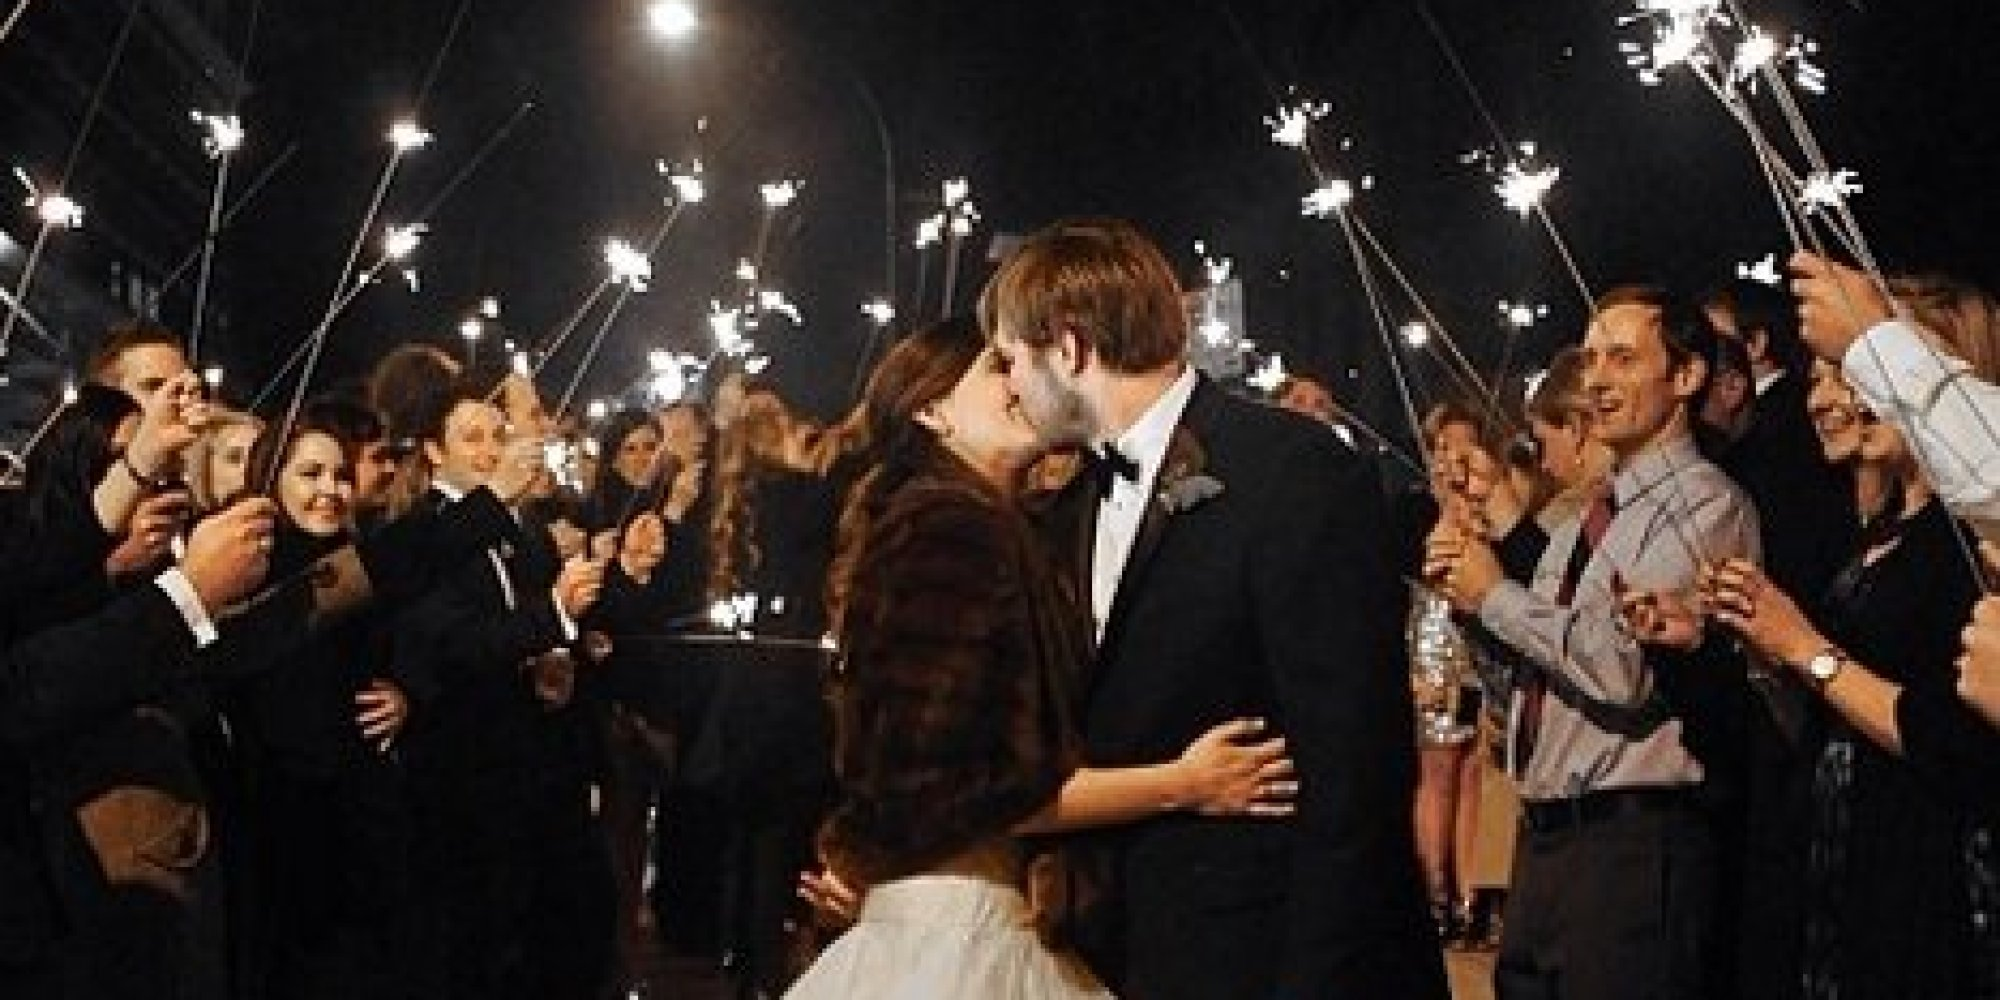 New Years Eve Party Guest 10 Reasons You Should Consider A New Year's Eve Wedding  The Huffington Post